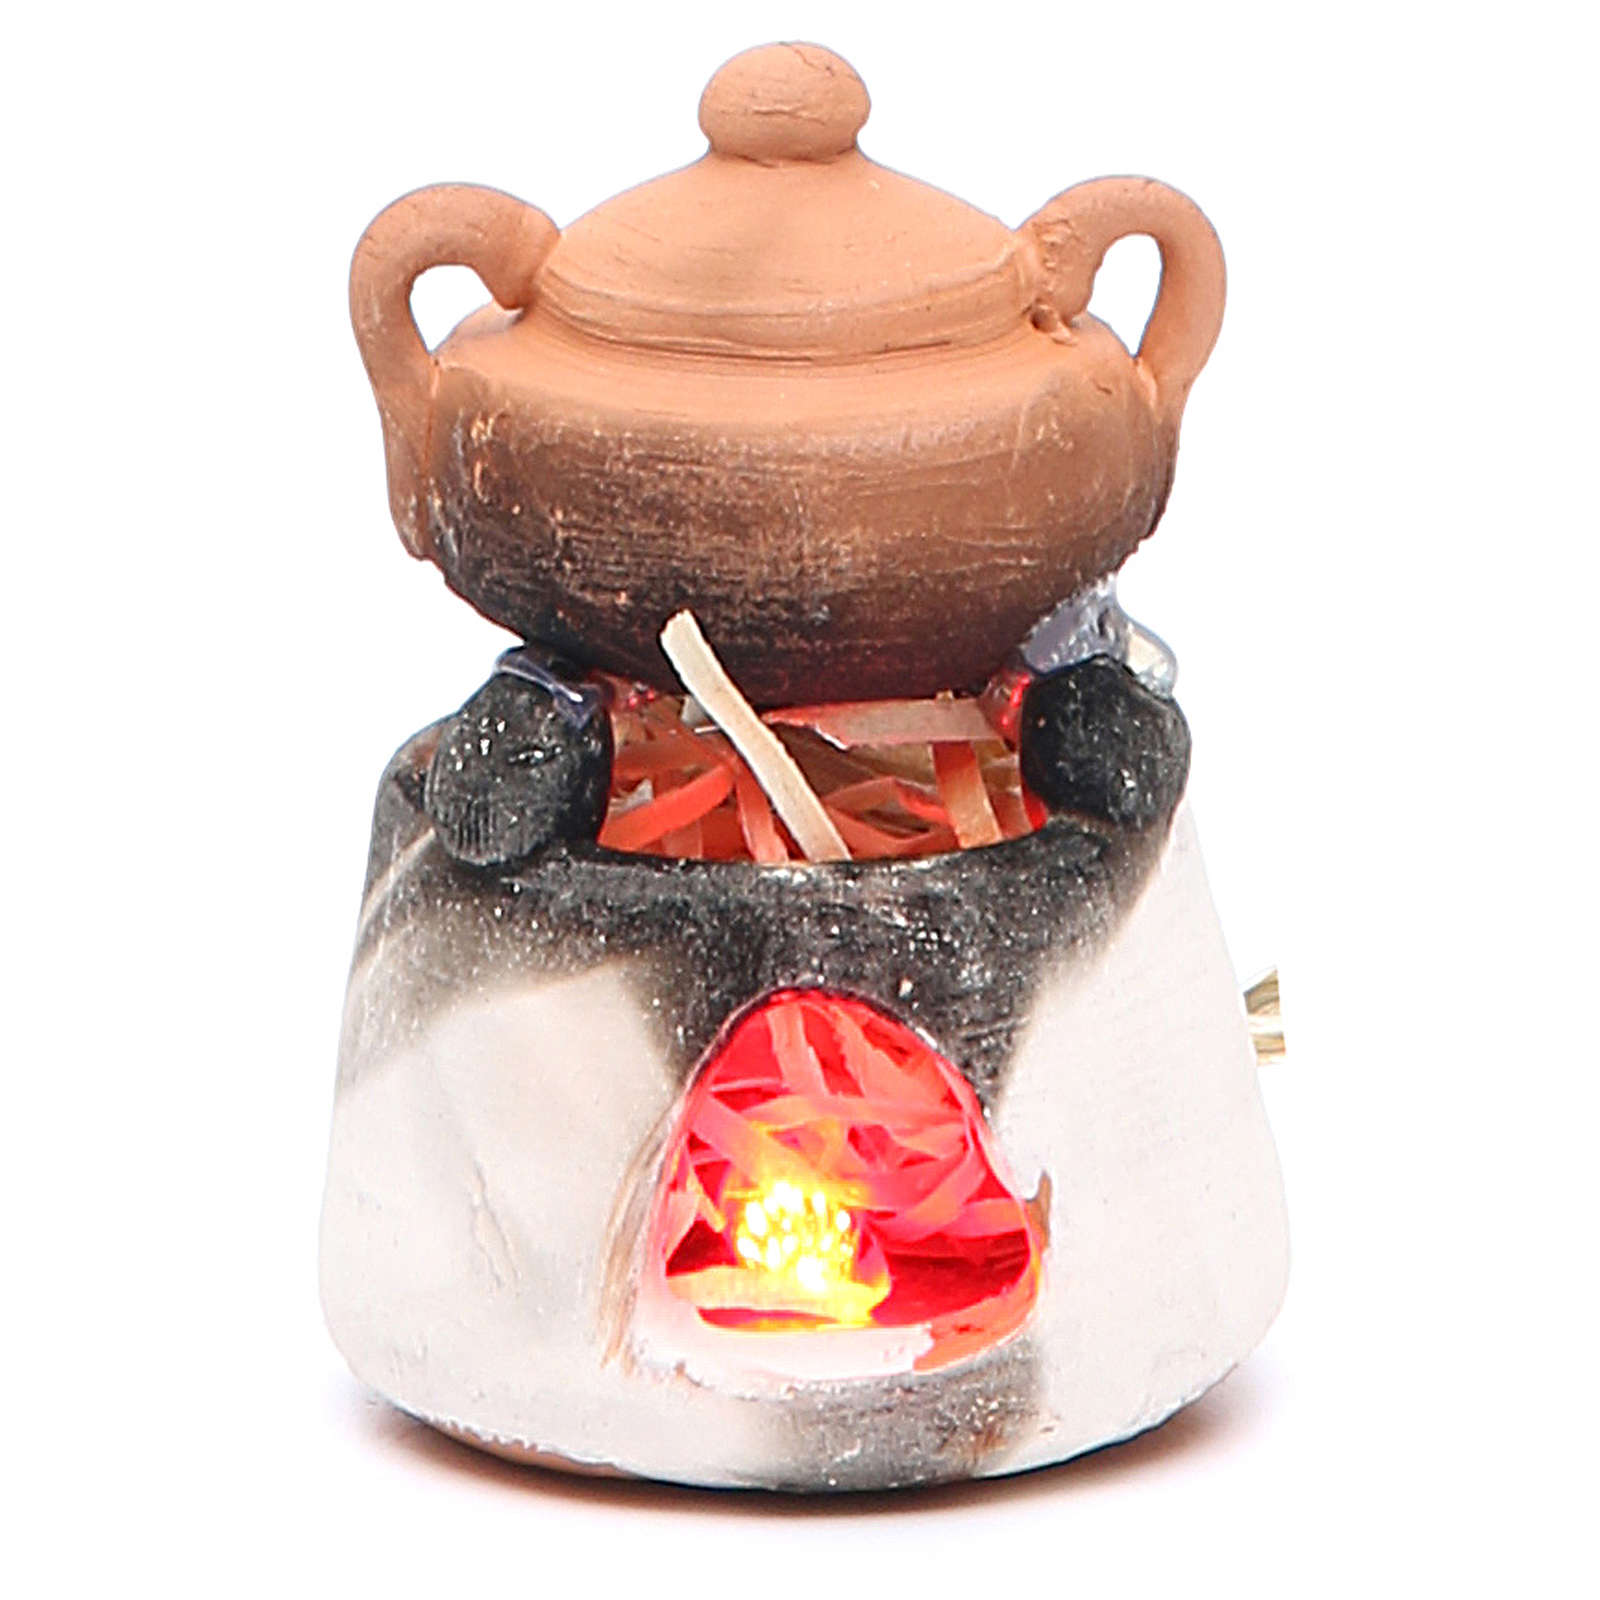 Ceramic oven with red light for nativities measuring 6cm 4